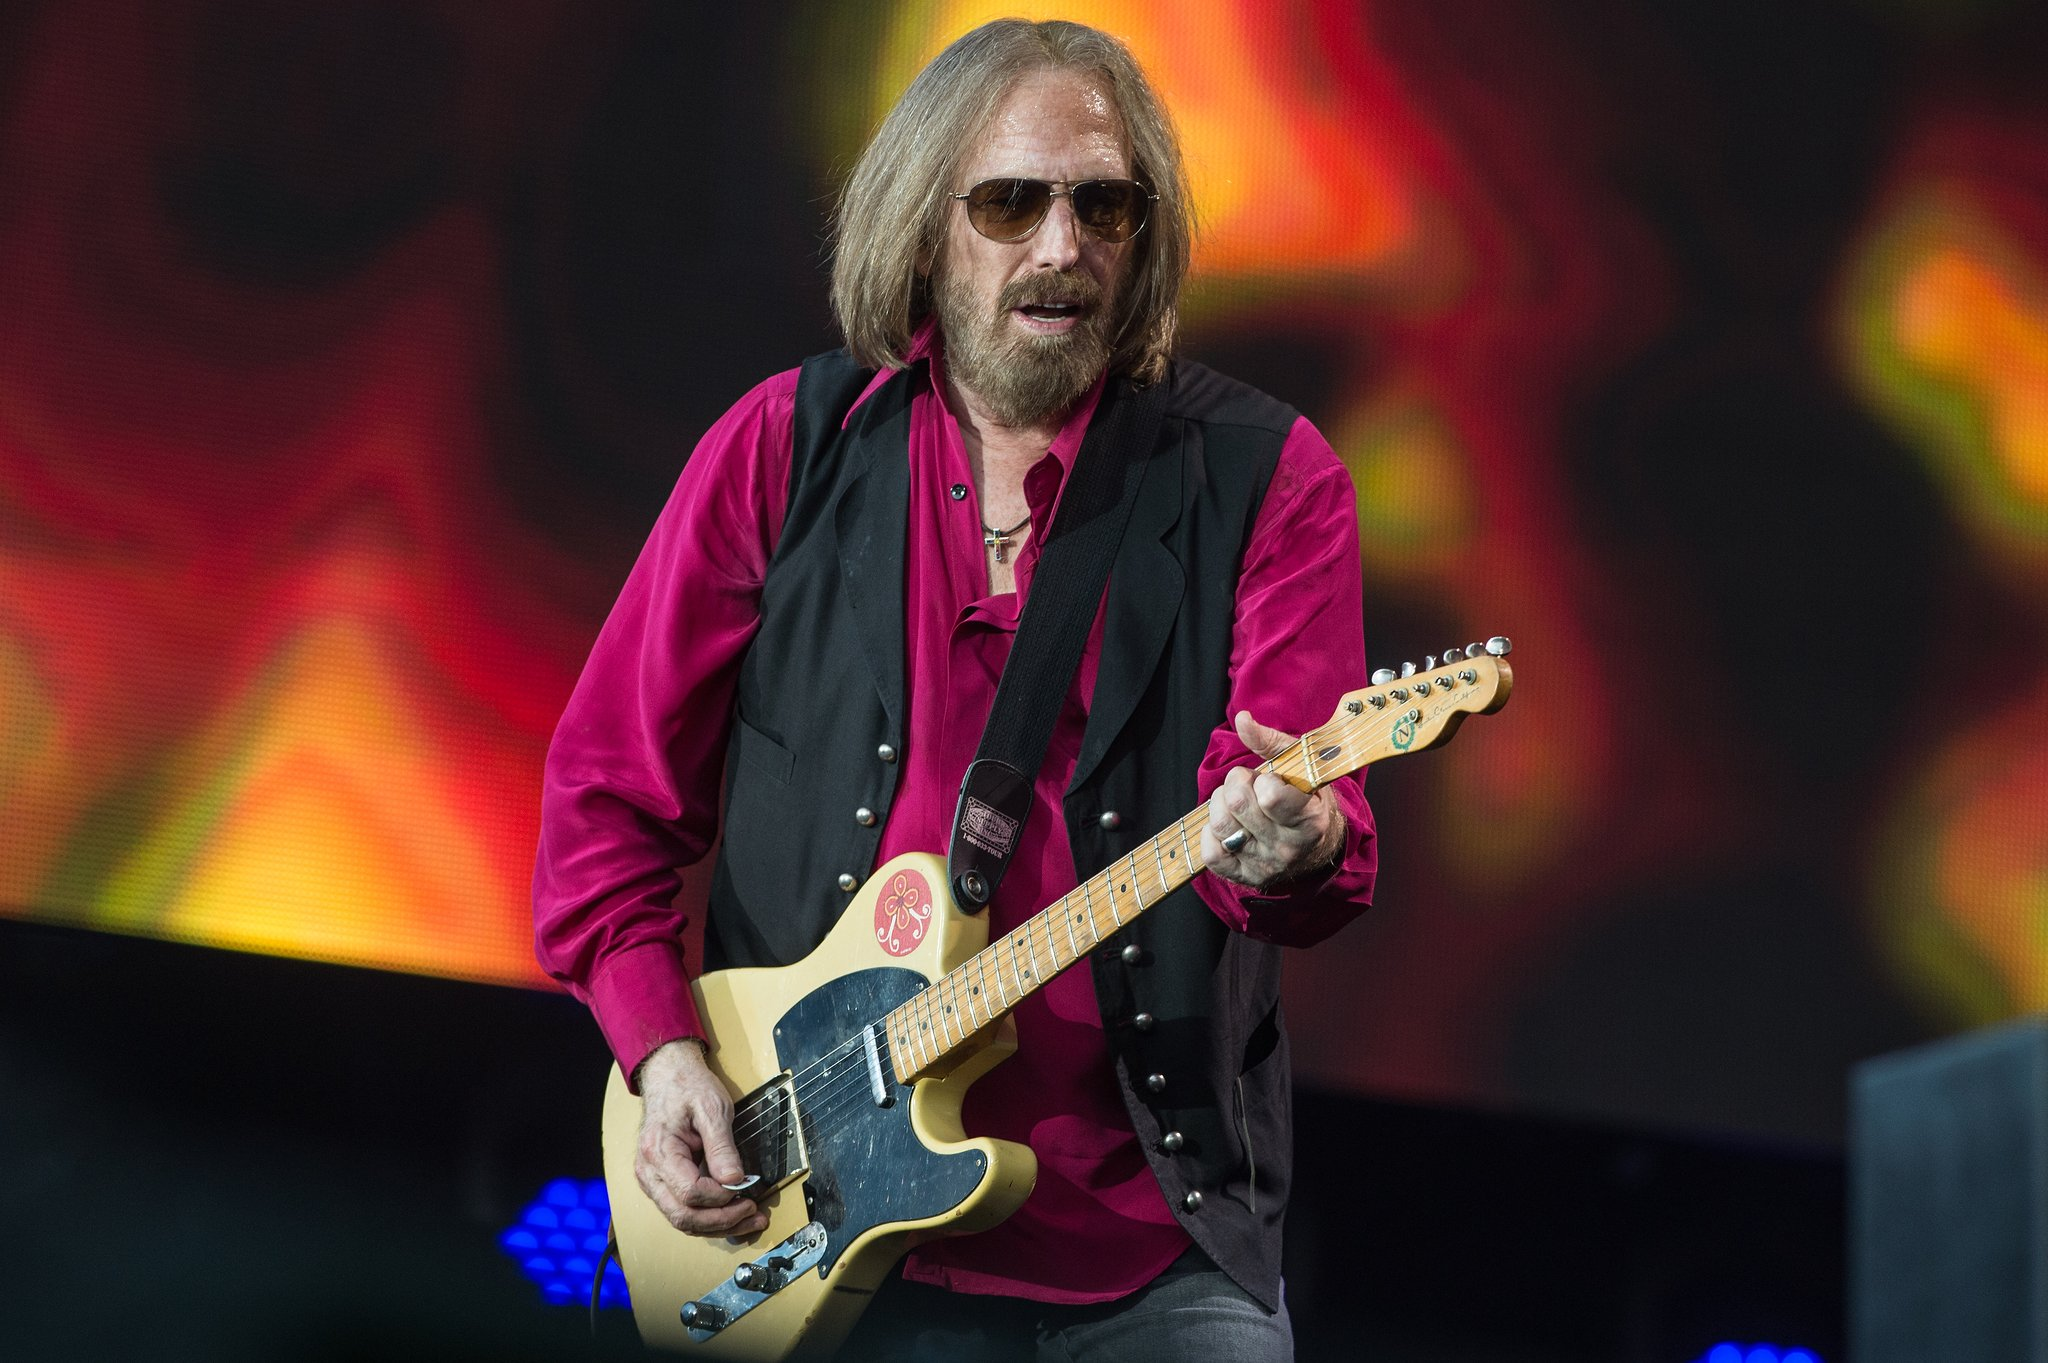 Tom Petty Song sold more than 6,000% after his Death